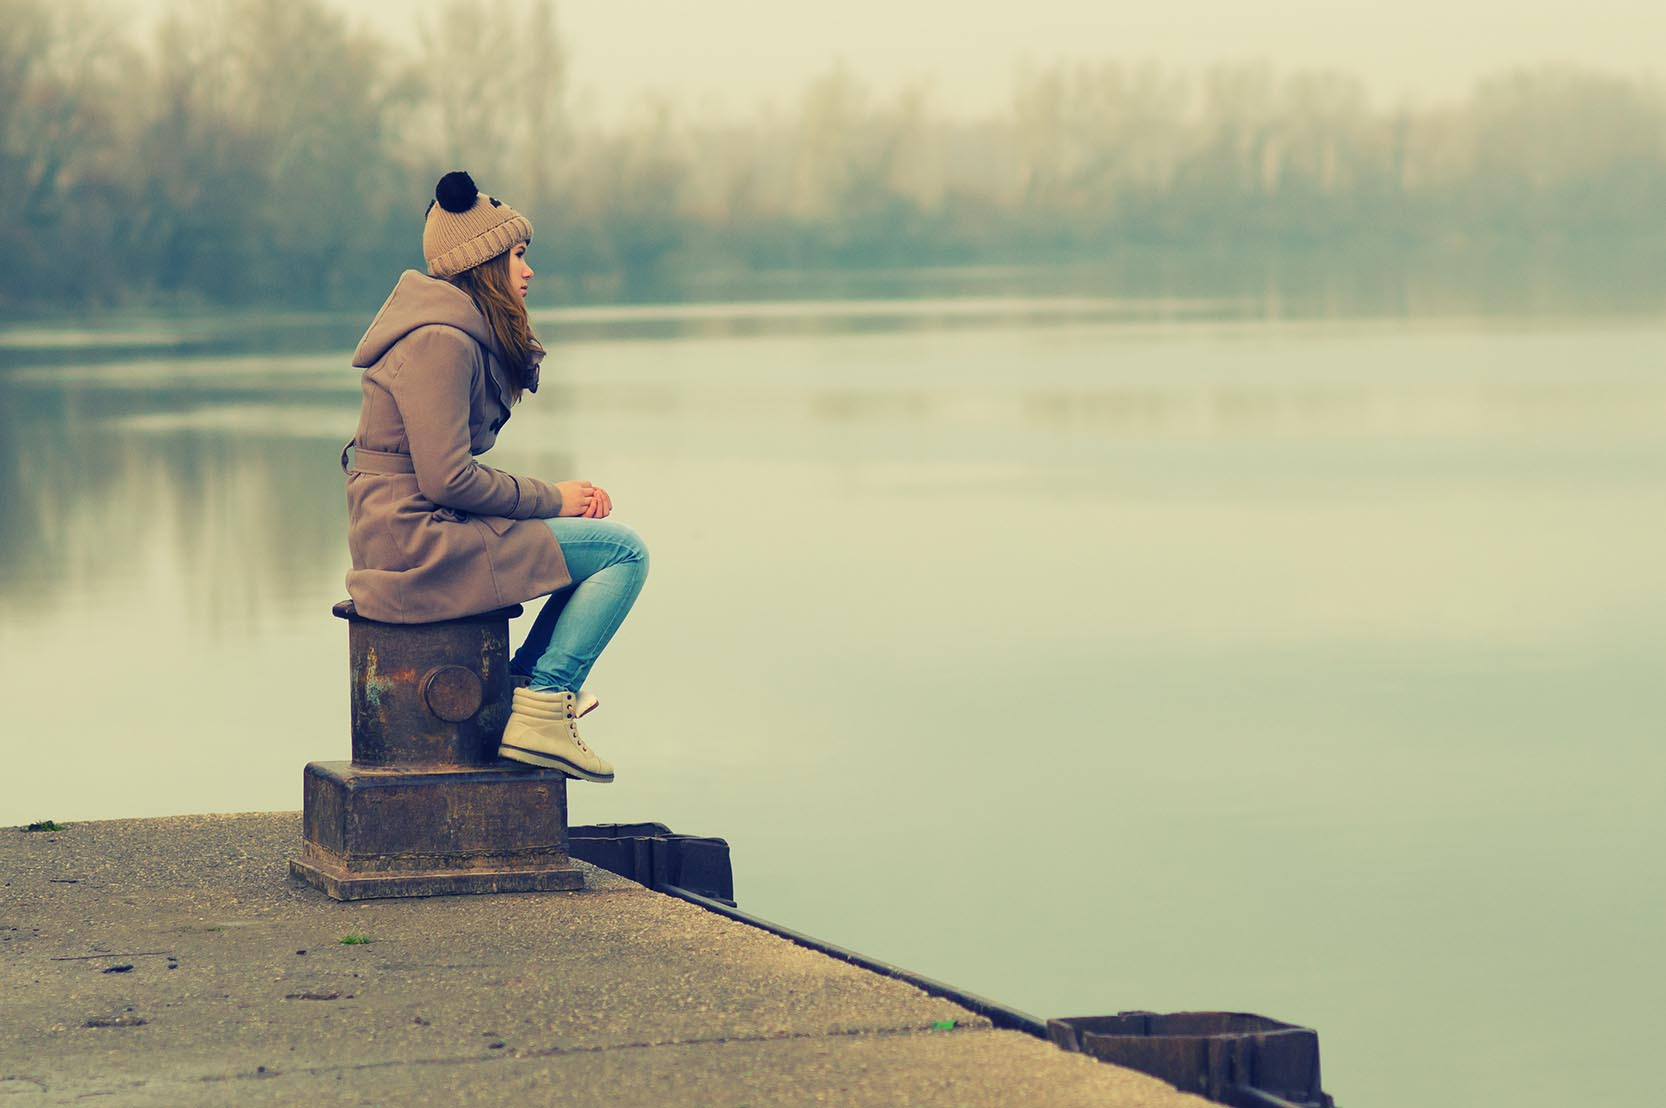 image of Lonely teenage girl sitting on the dock